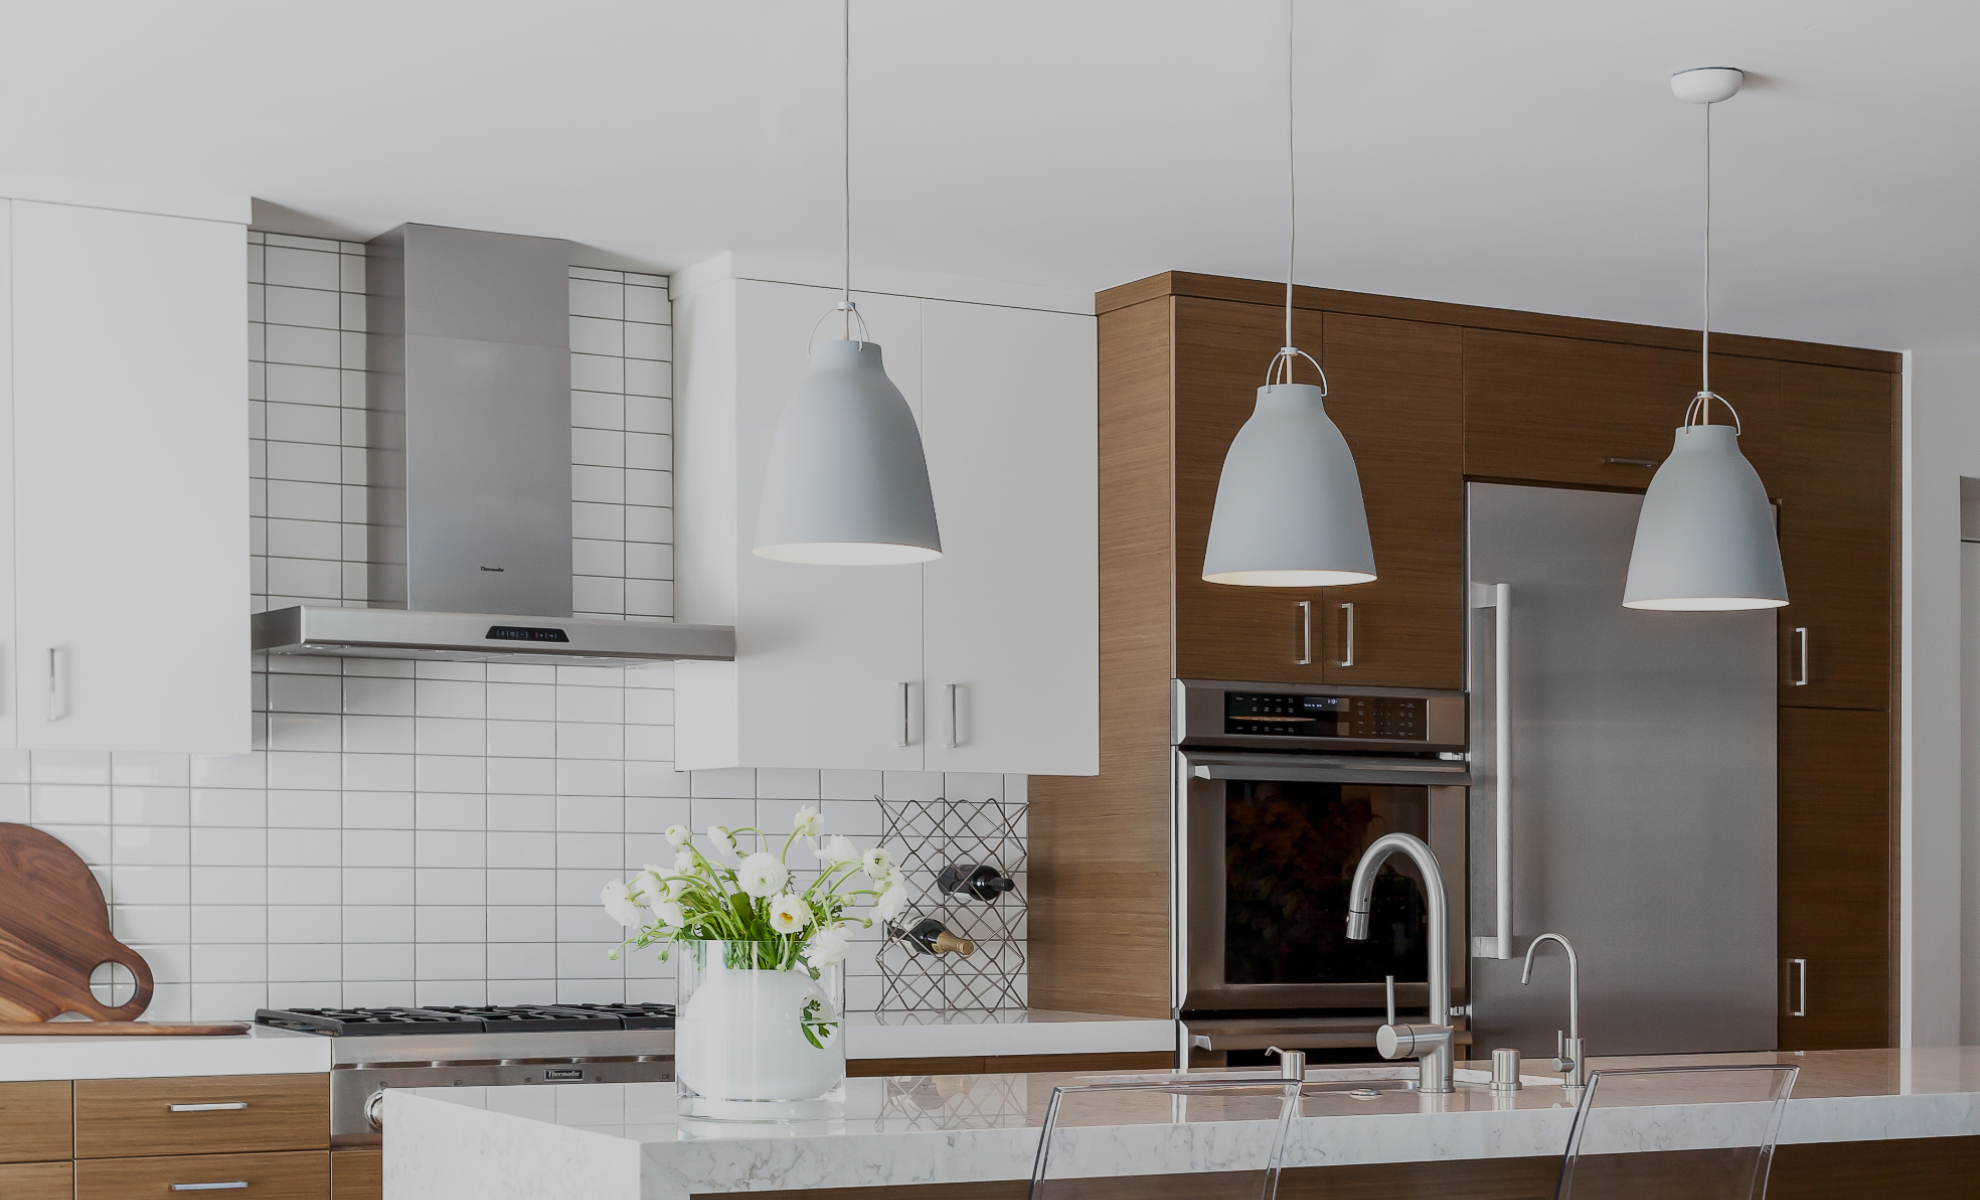 kitchen pendant lights sinks & faucets lighting ideas how to s advice at lumens com choose